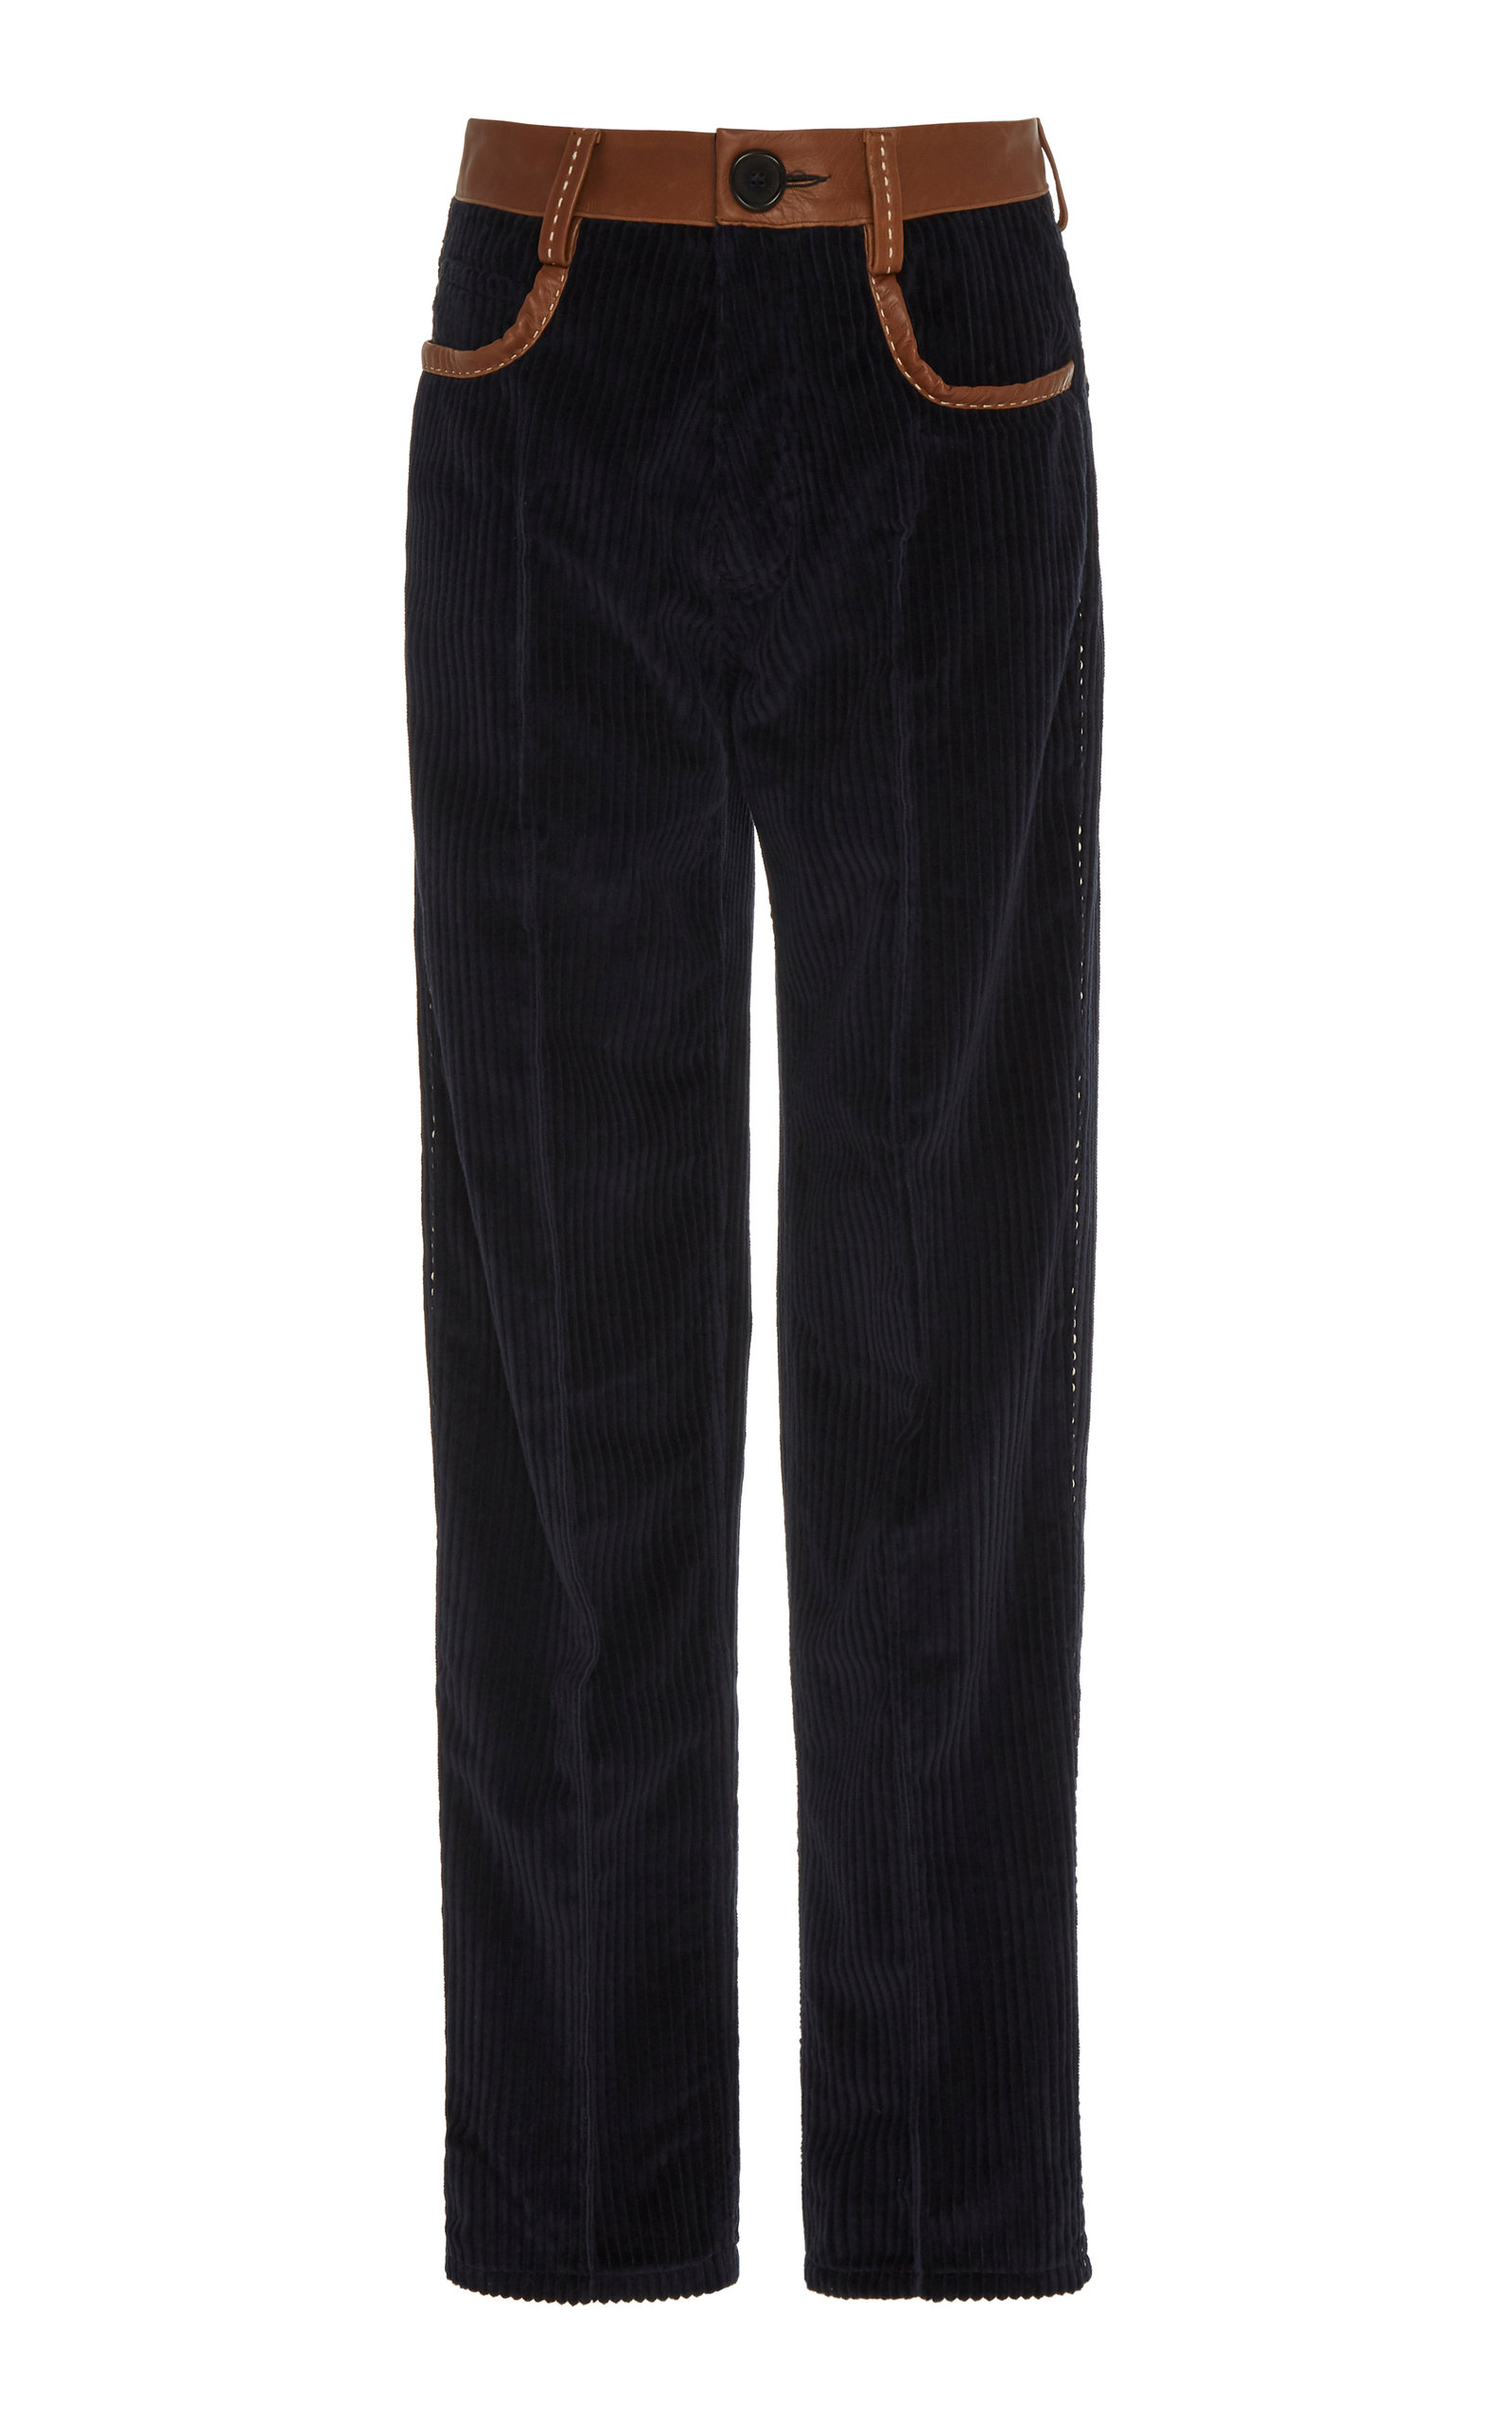 Leather Trimmed Cotton Corduroy Straight Leg Pants by Wales Bonner